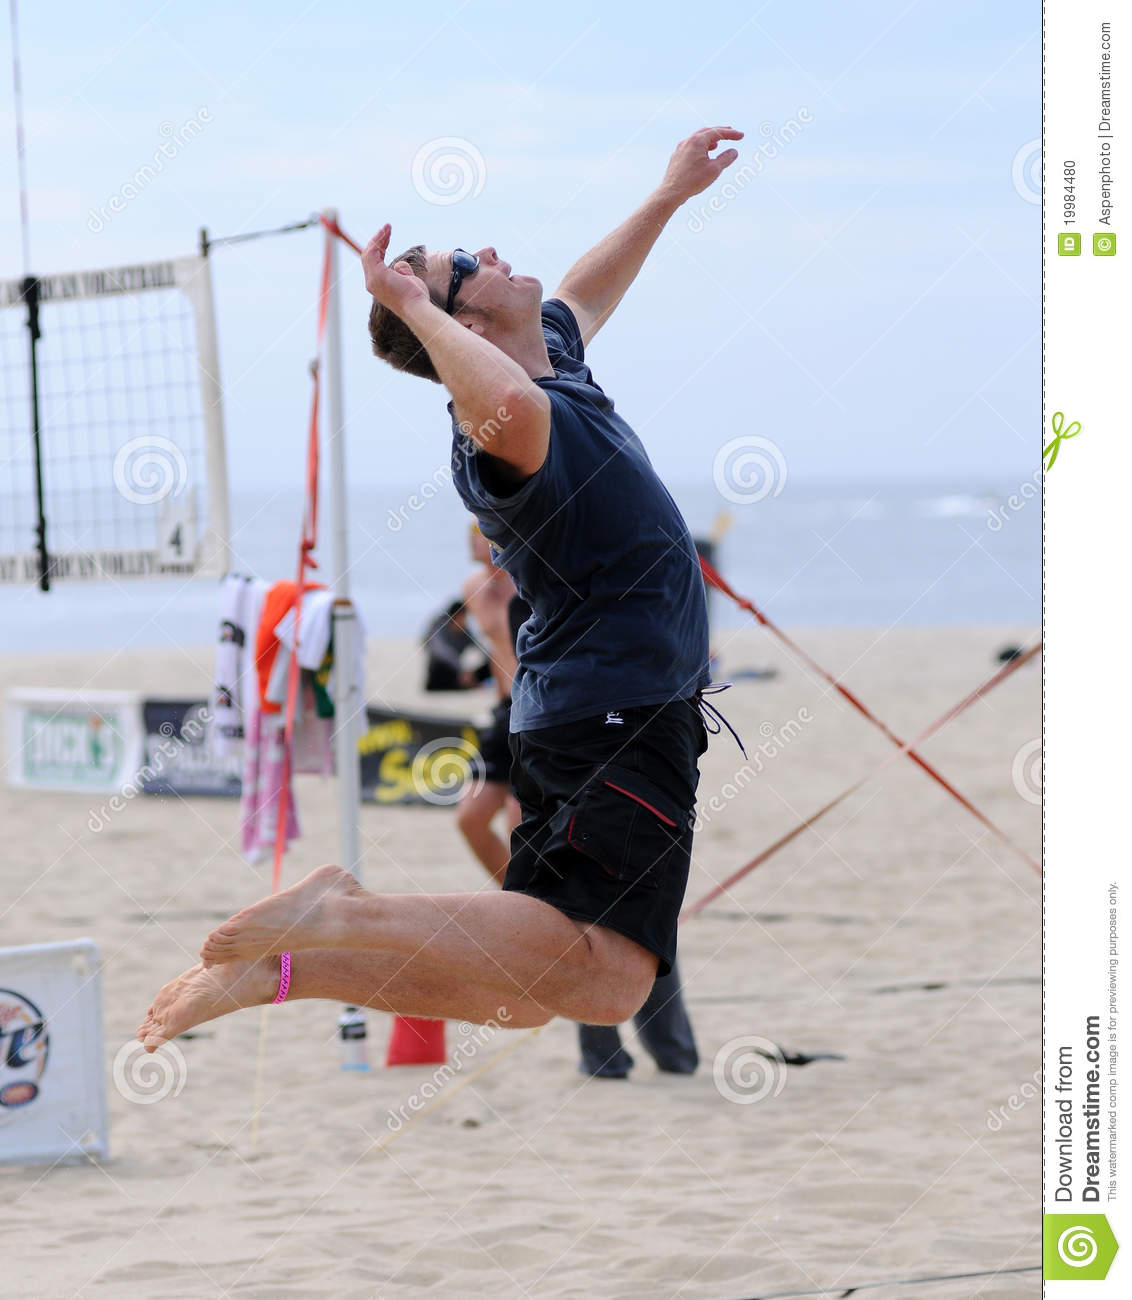 Men's Beach Volleyball Jump Serve Editorial Image - Image ...